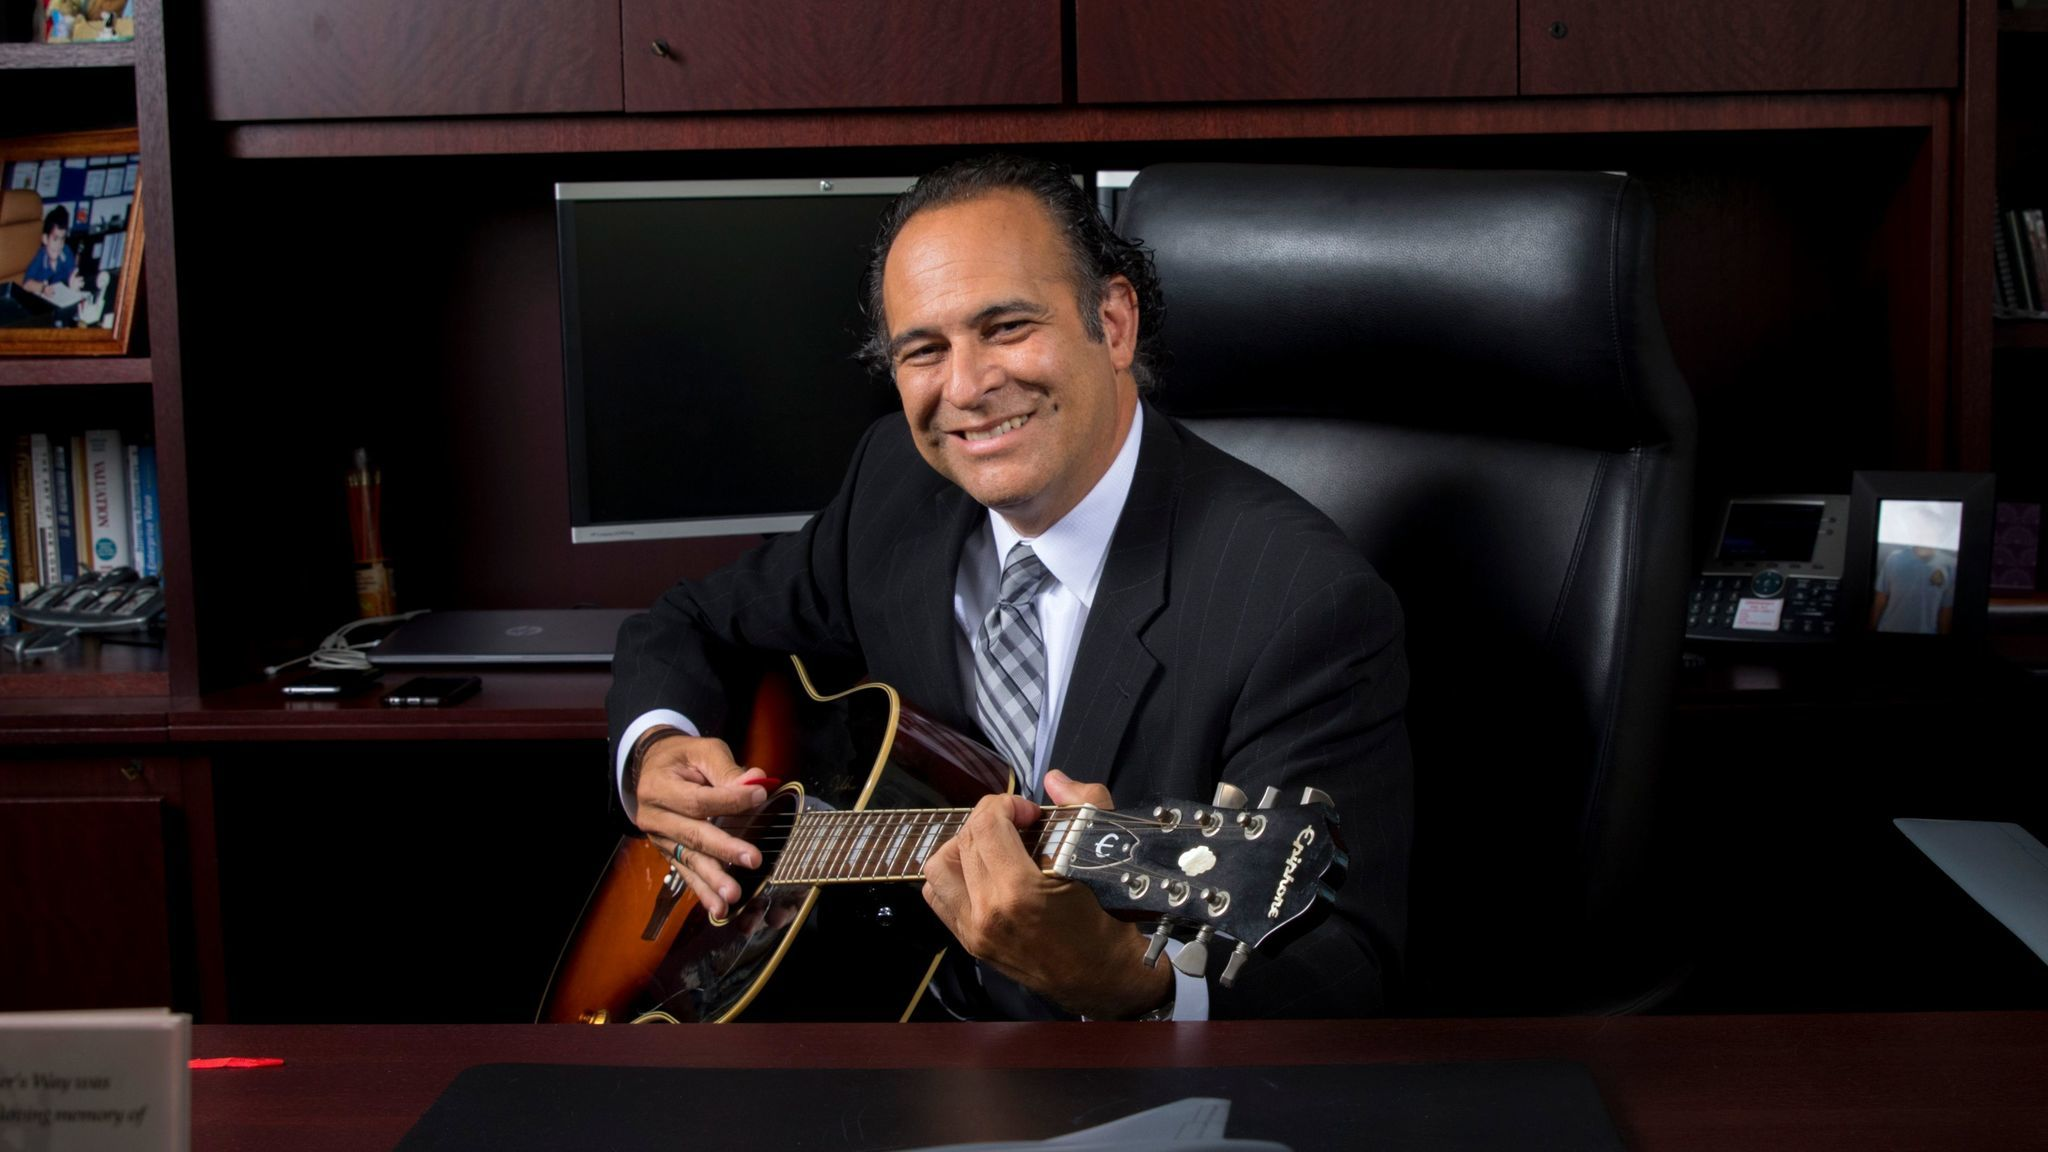 Northrop Grumman Corp. executive Chris Hernandez learned to play the guitar at the urging of one of his sons.